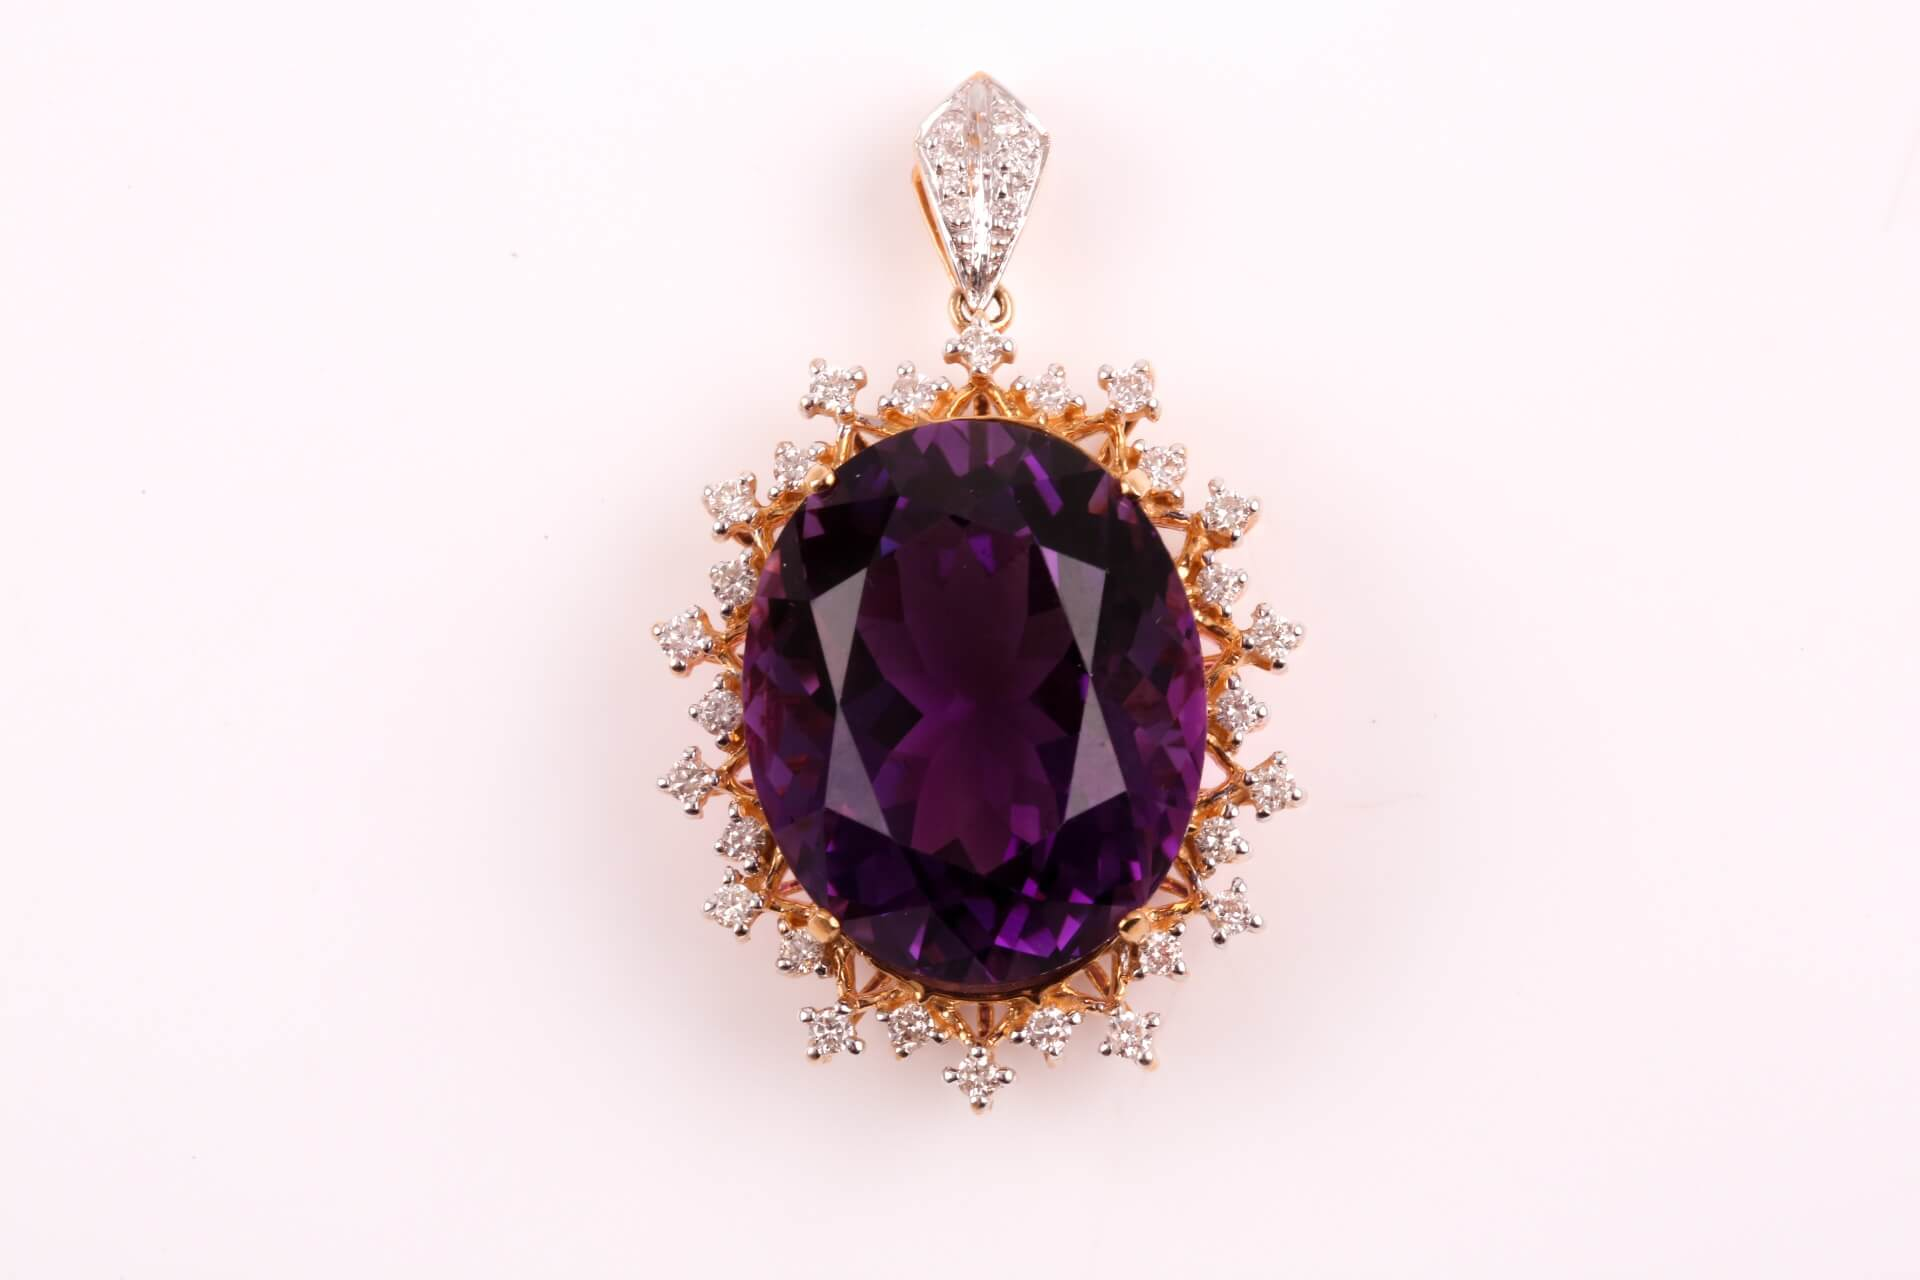 An 18ct yellow gold, diamond, and amethyst pendant by Lorique